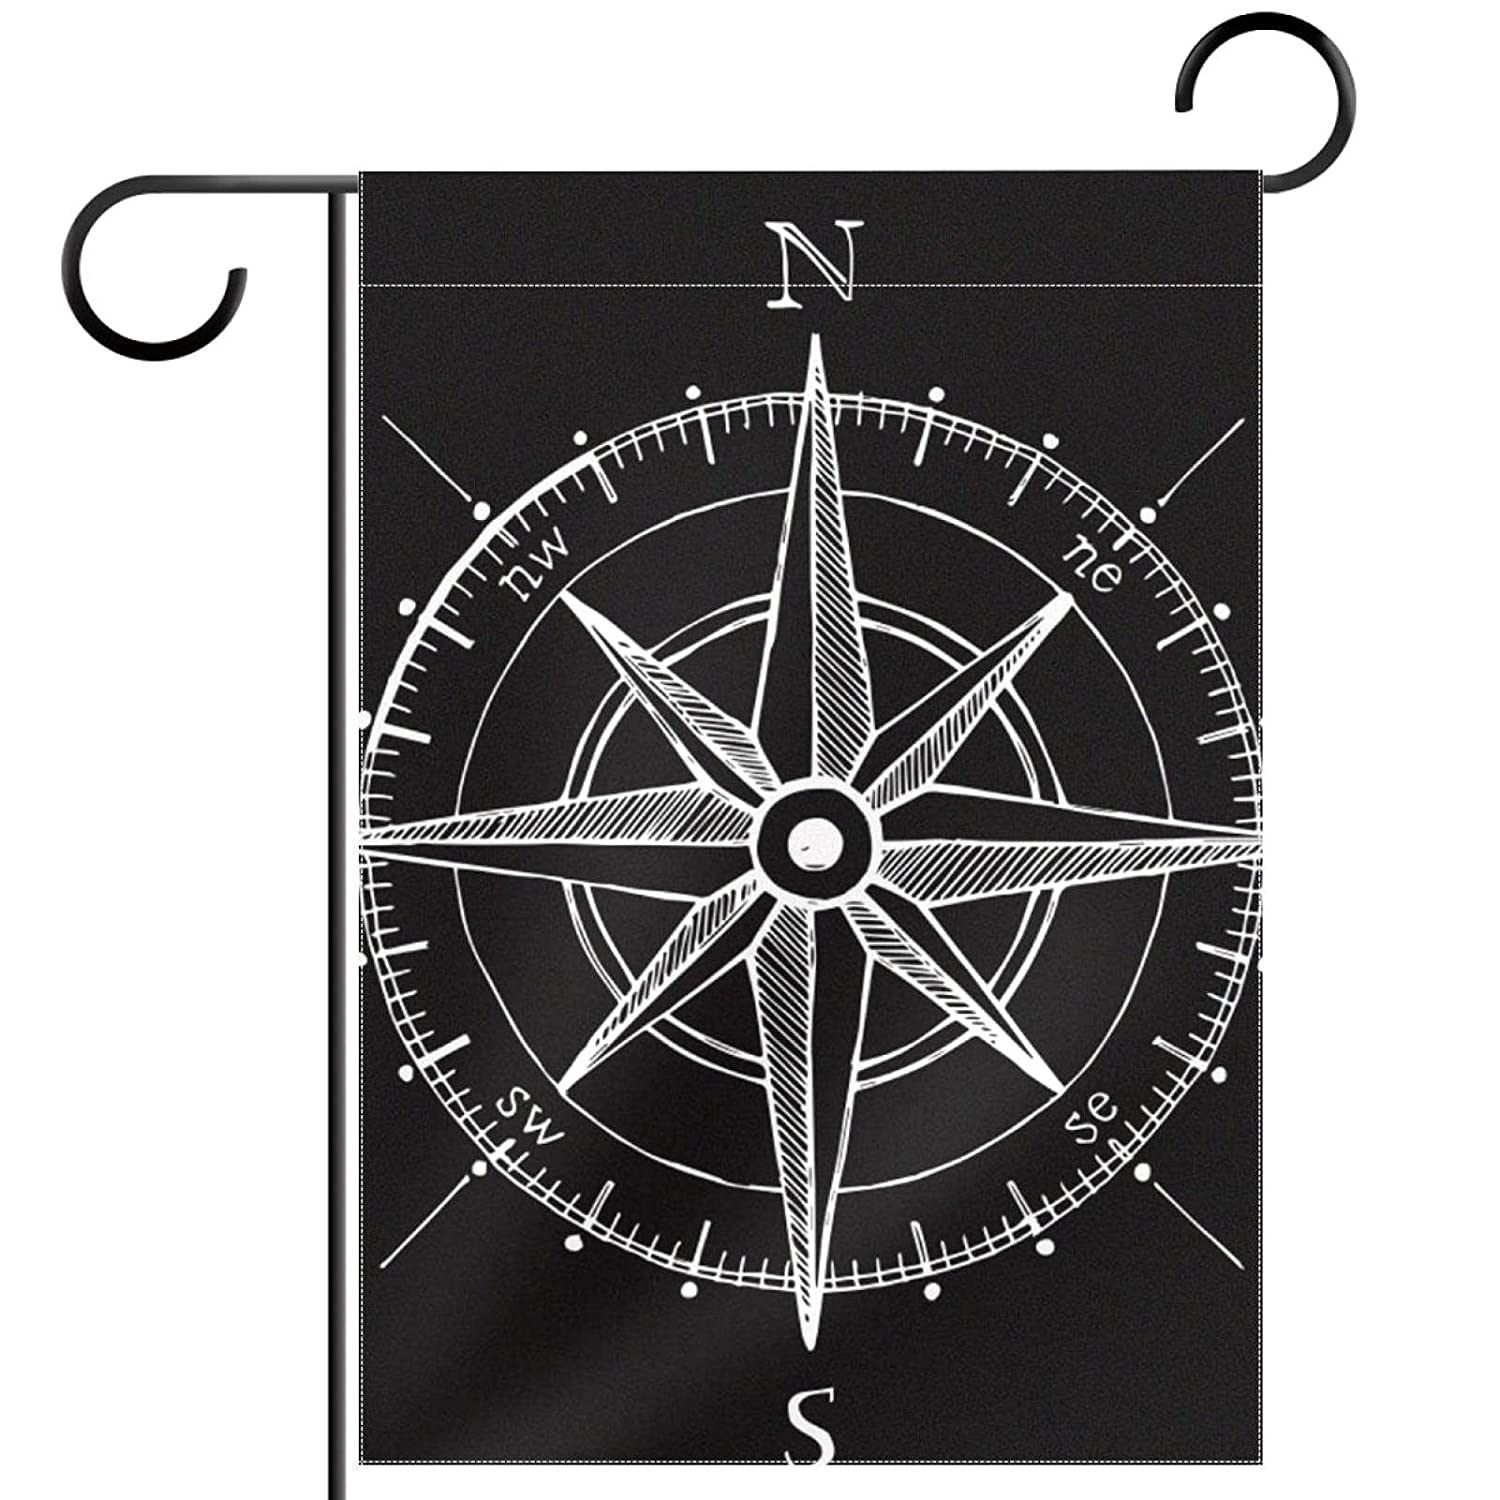 28x40in Double Sided Welcome Garden FlagOutdoor Yard Decoration Flag,Rose Compass